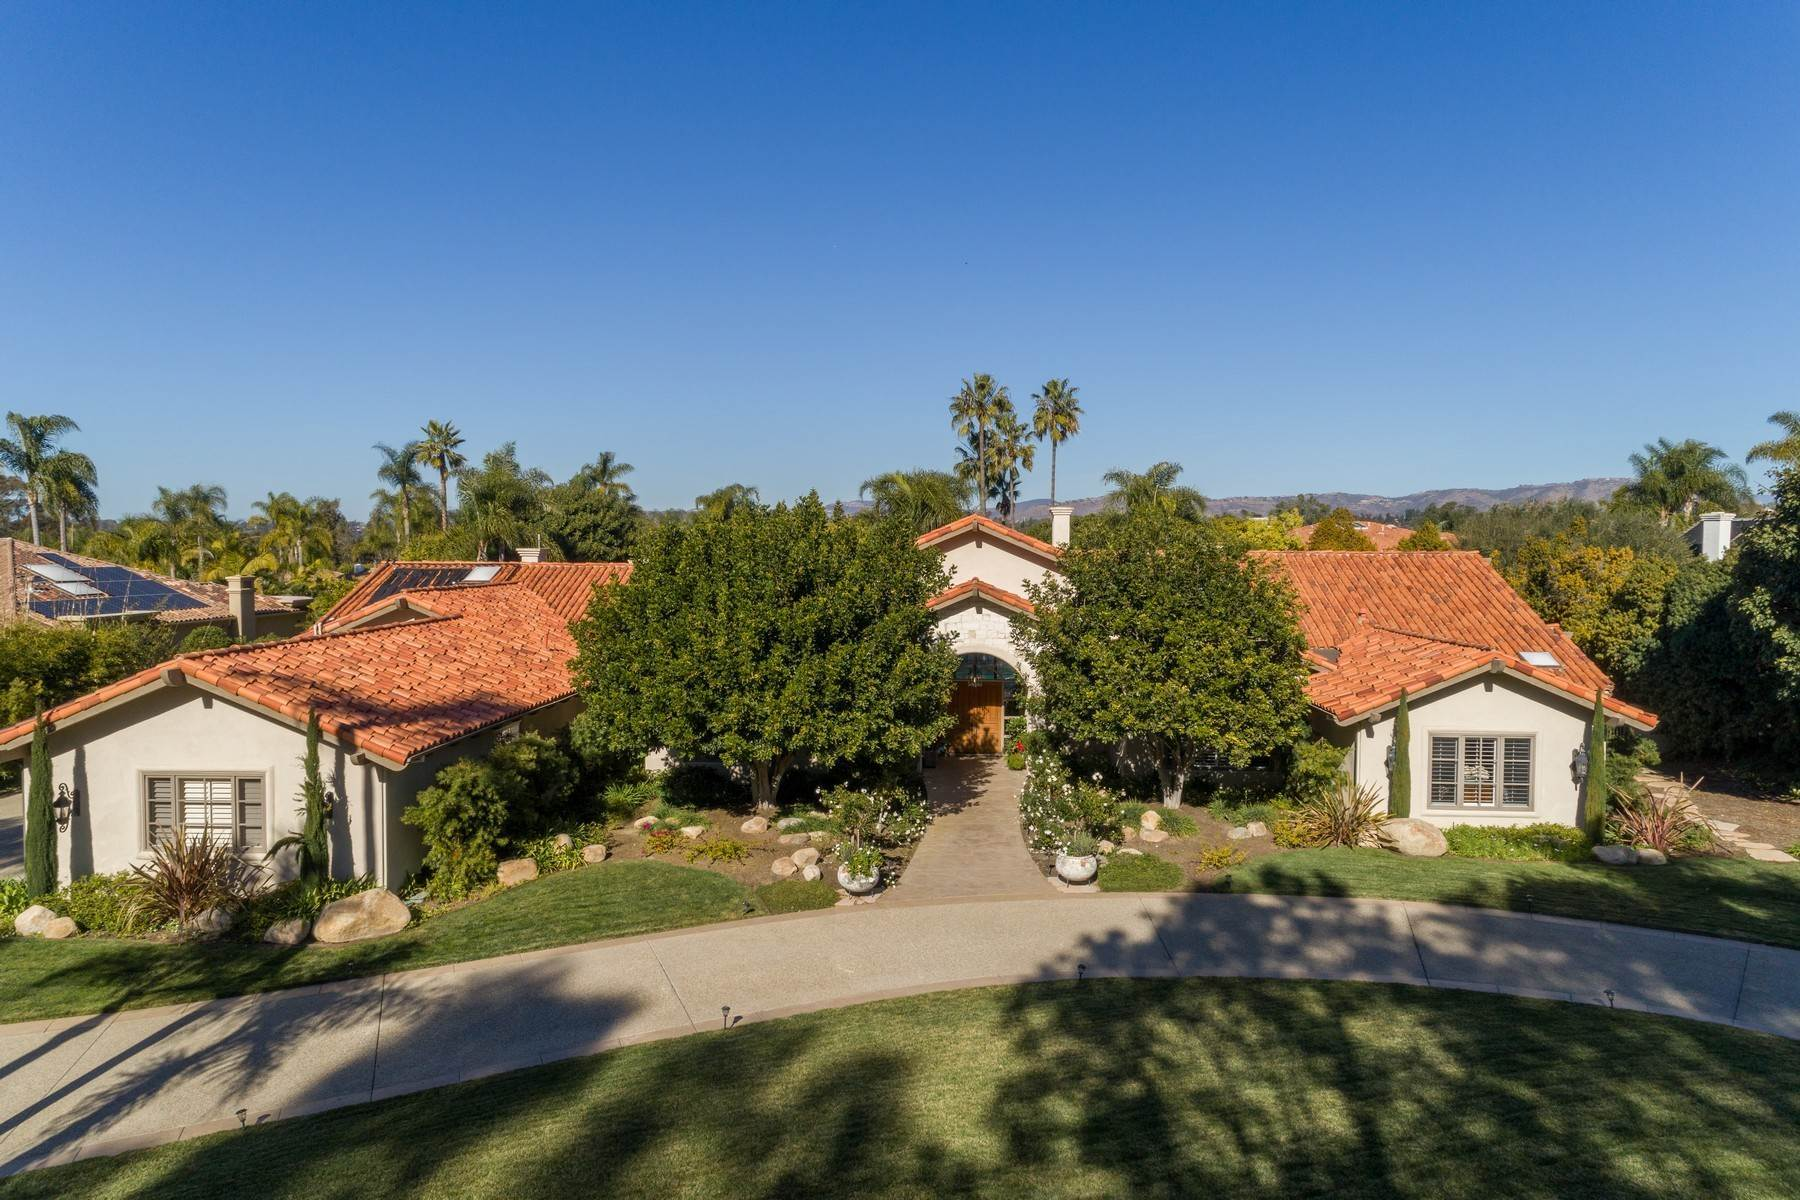 Single Family Homes for Sale at 16364 Via Cazadero, Rancho Santa Fe, CA 92067 16364 Via Cazadero Rancho Santa Fe, California 92067 United States